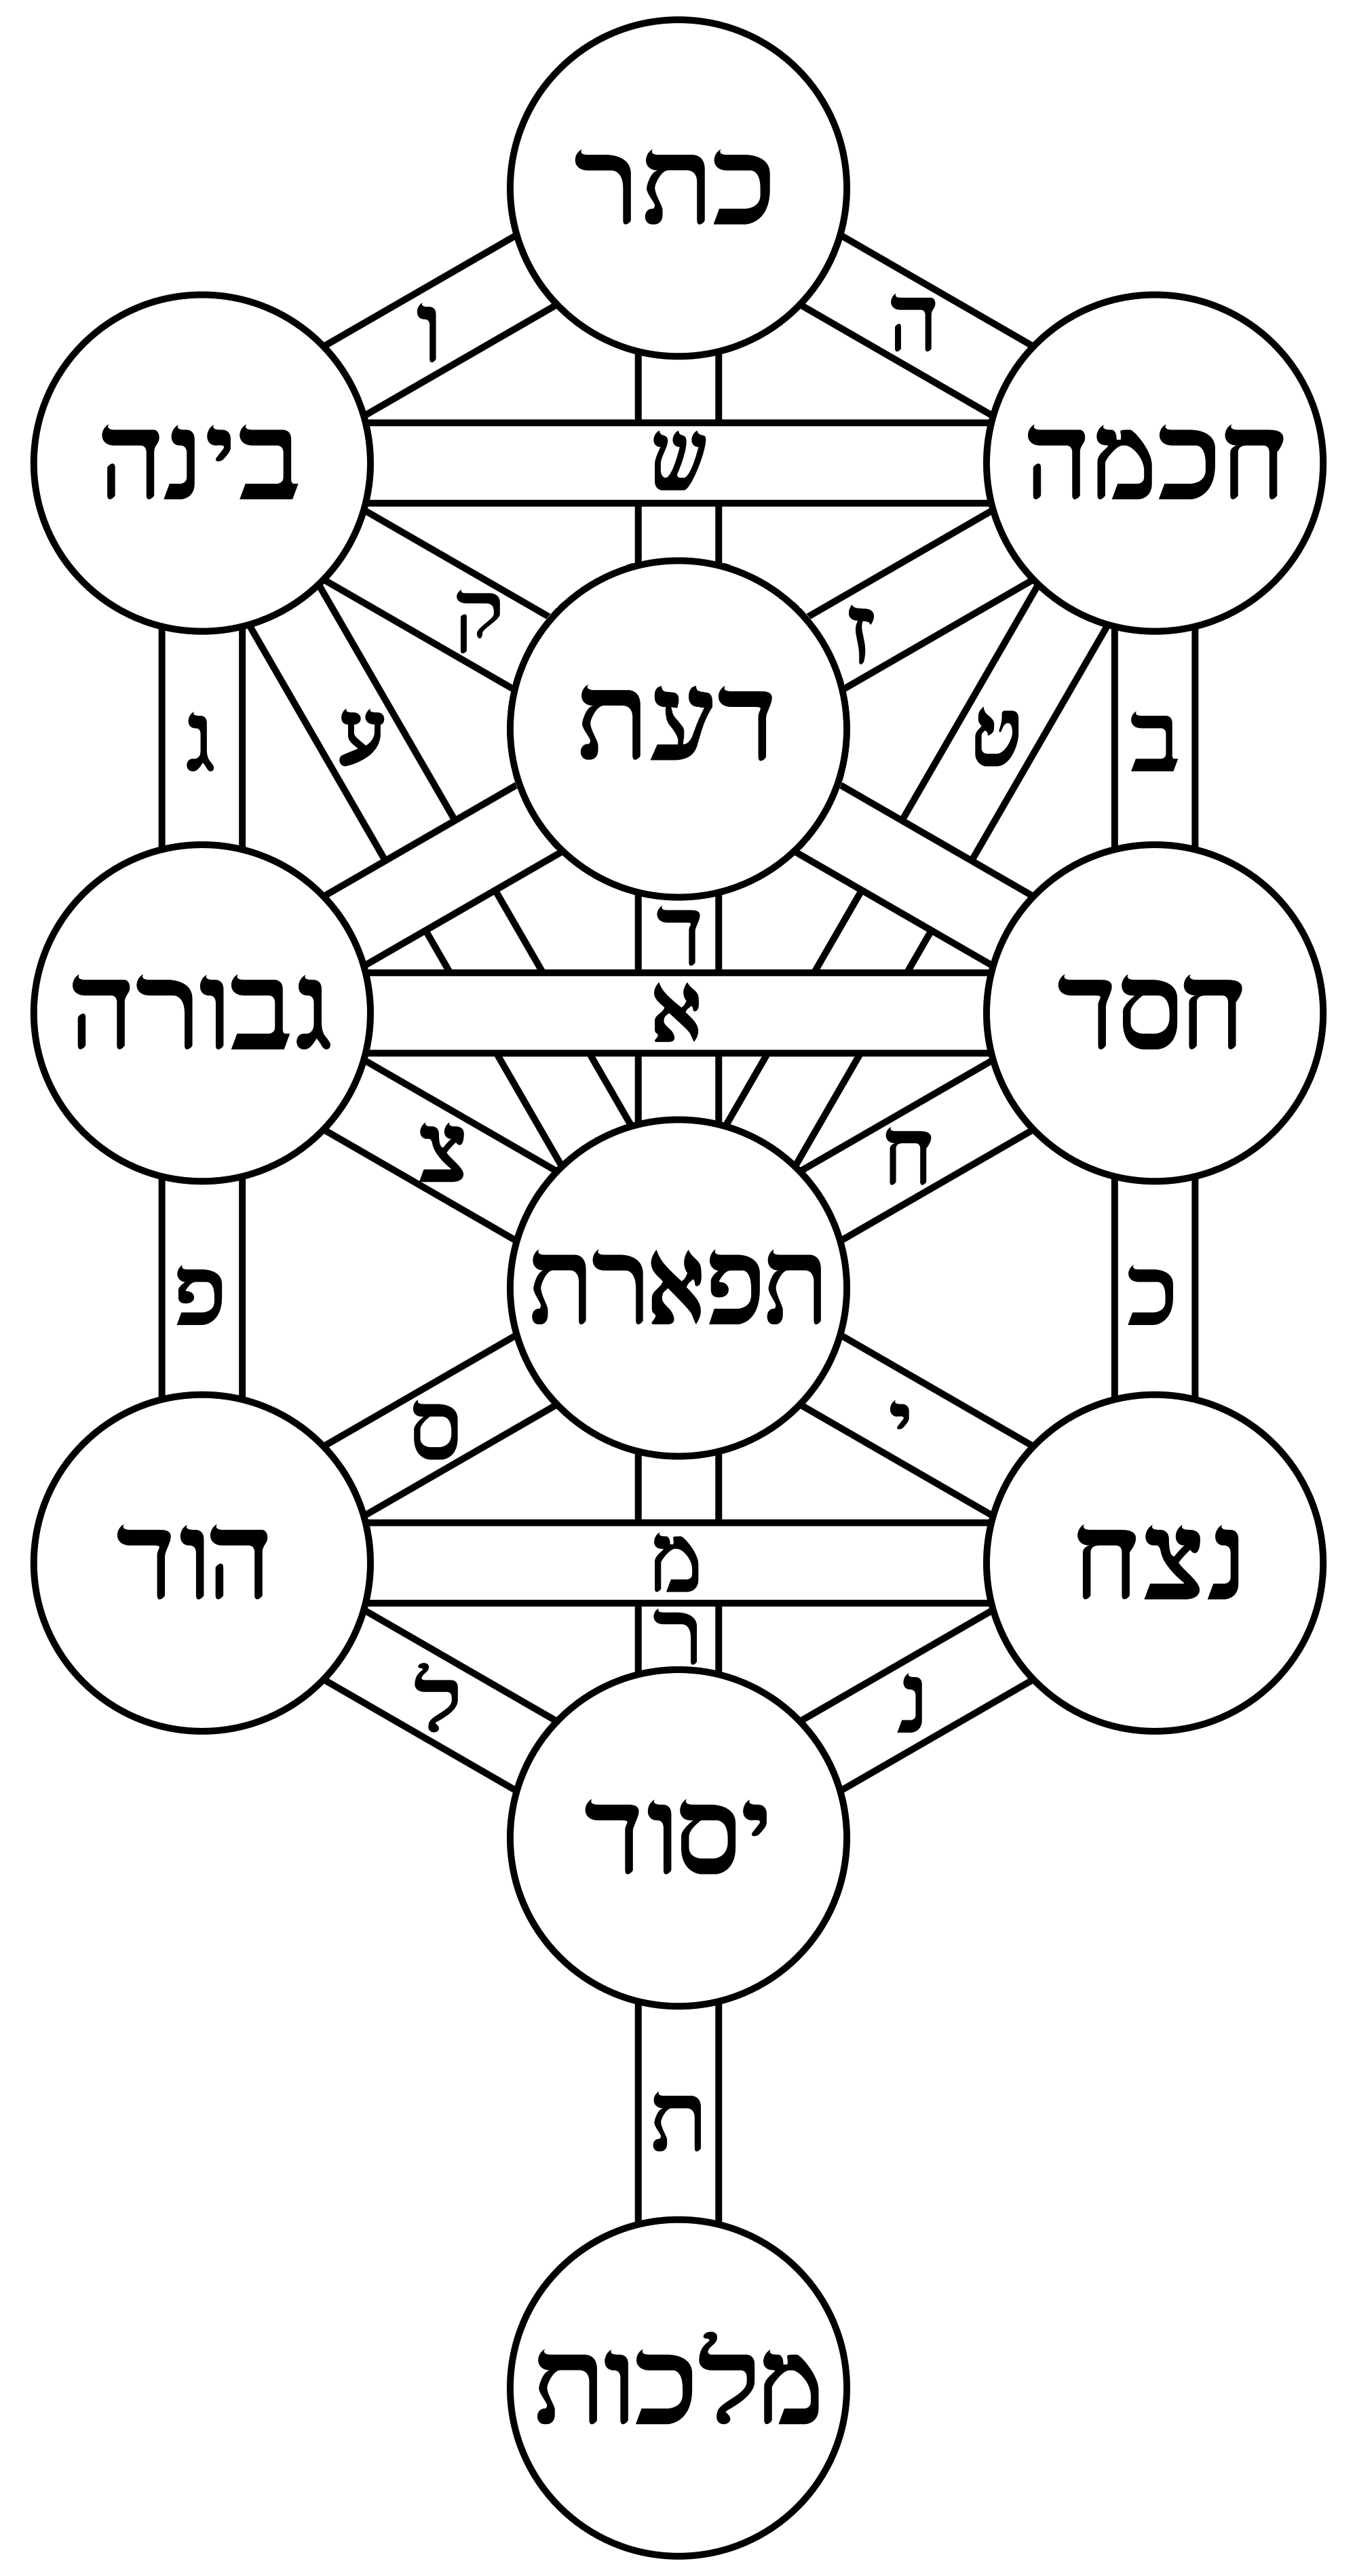 File Tree Of Life Bahir Hebrew Png Wikimedia Commons Kabbalah tree of life, astrology, chakras, numerology,. https commons wikimedia org wiki file tree of life bahir hebrew png